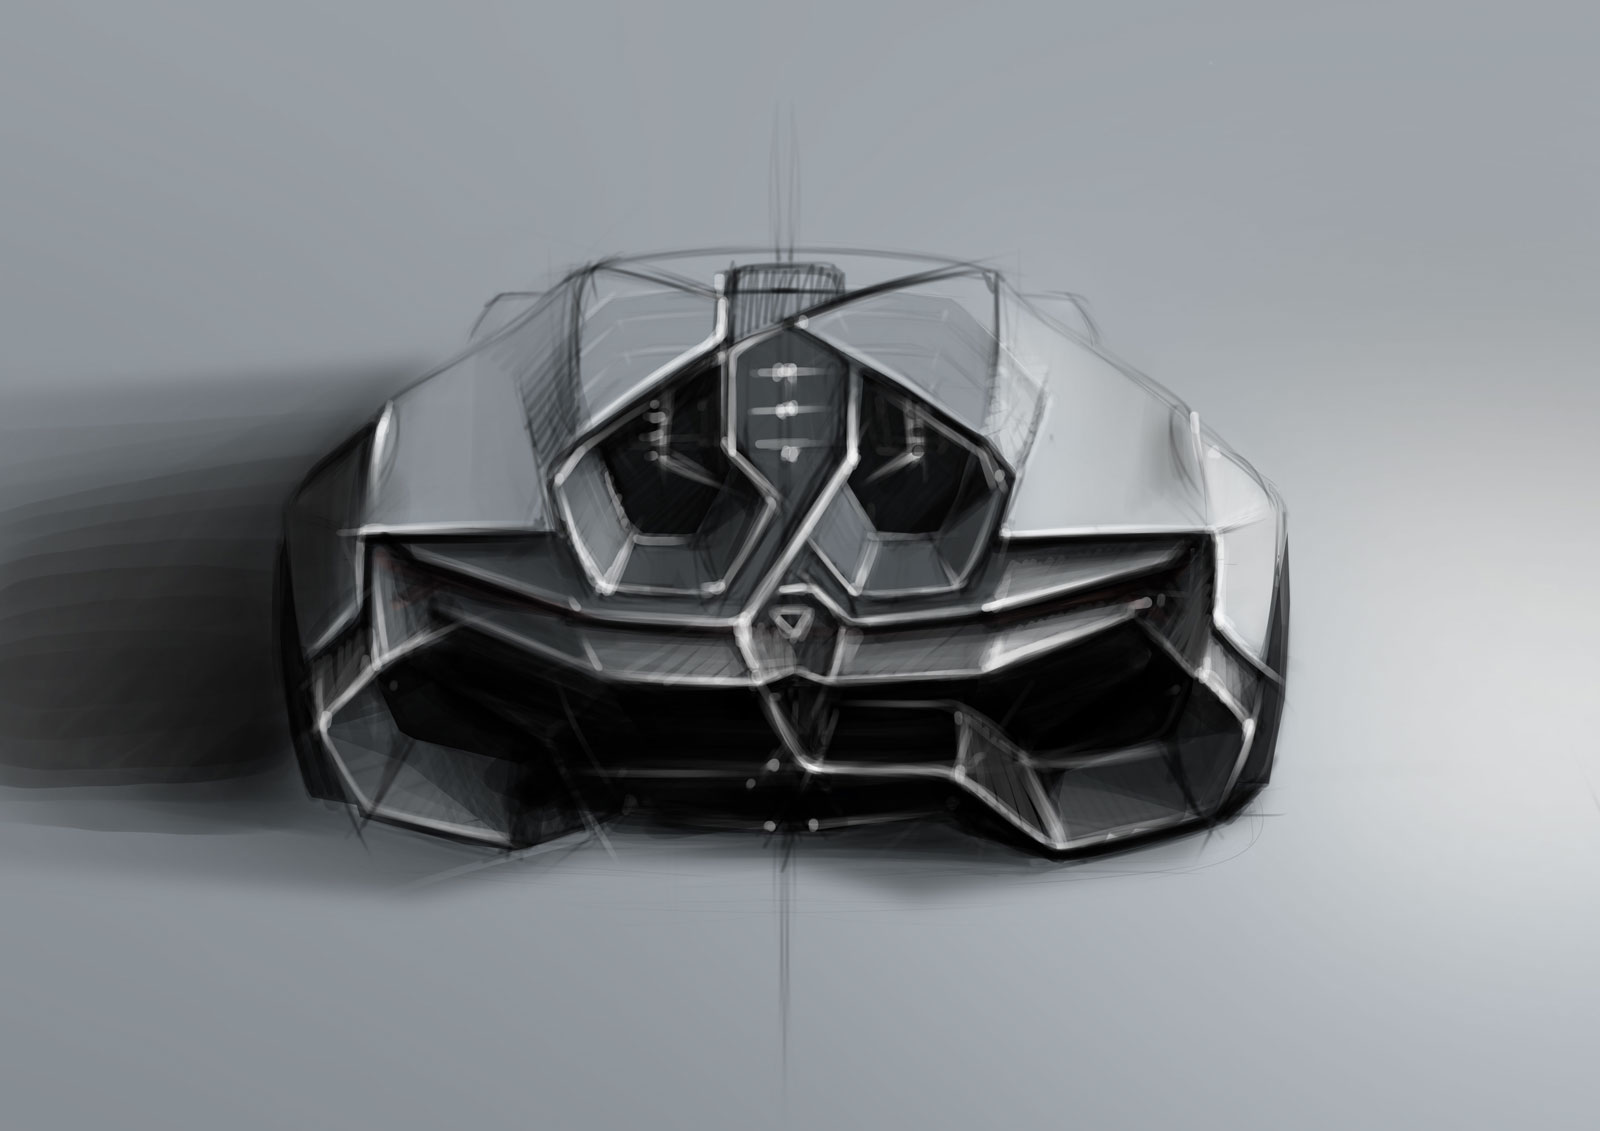 Lamborghini Encierro Concept Design Sketch Car Body Design